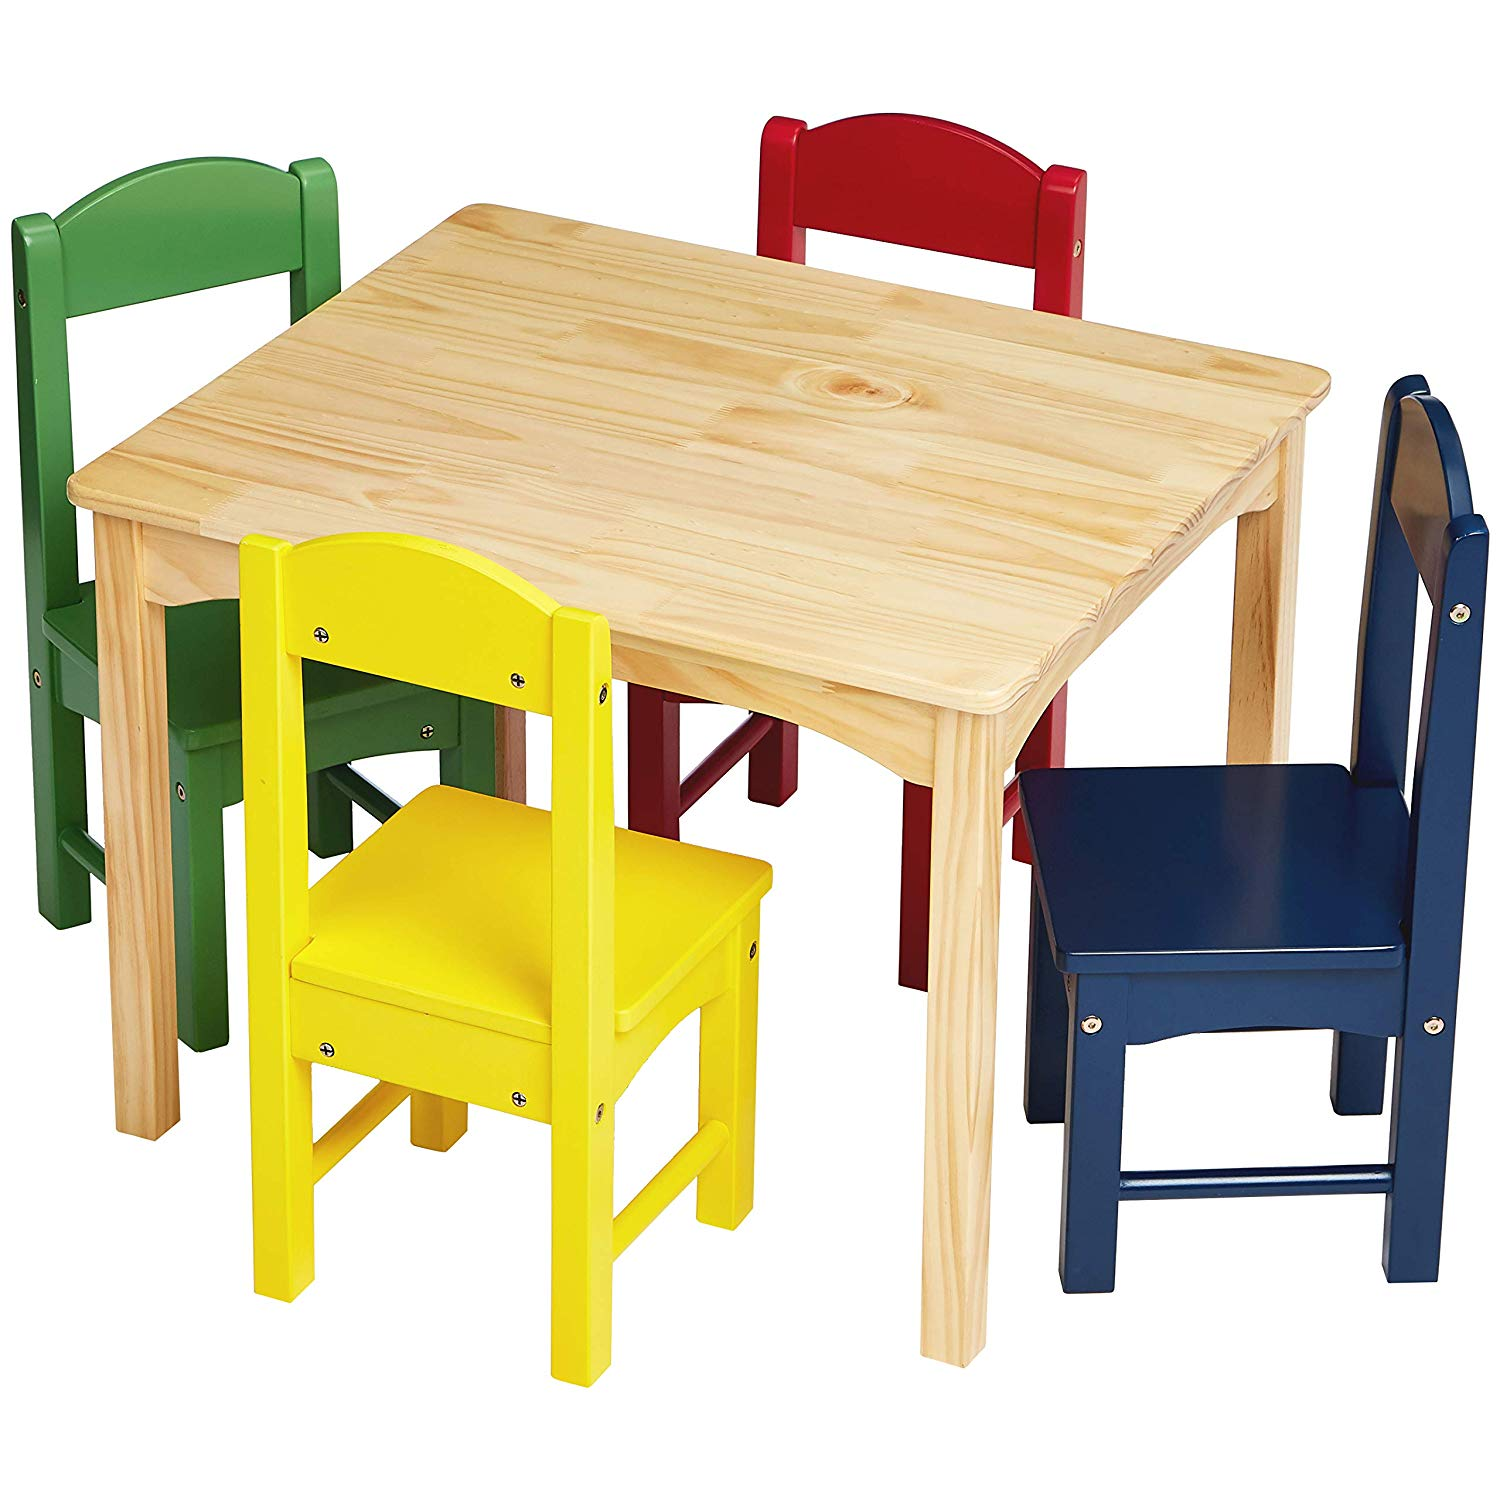 kids-tables-and-chairs-amazonbasics